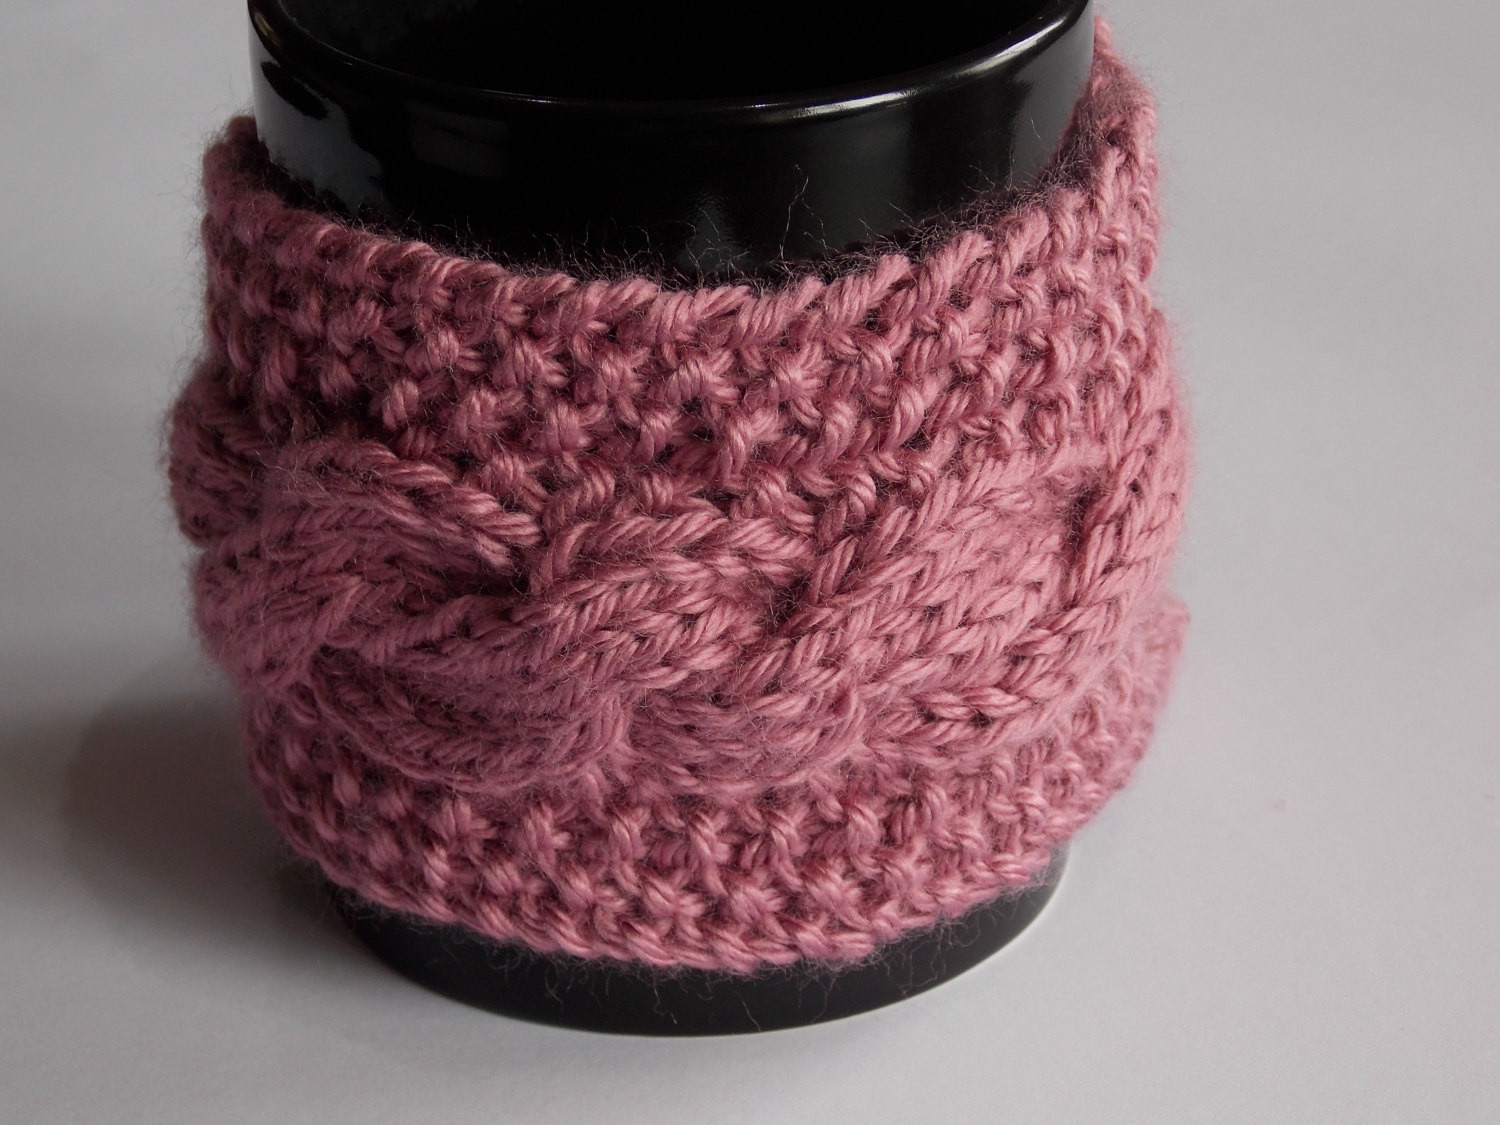 knitted cabled coffee cuff mug cup cozy by SewCuteQuiltAndKnit